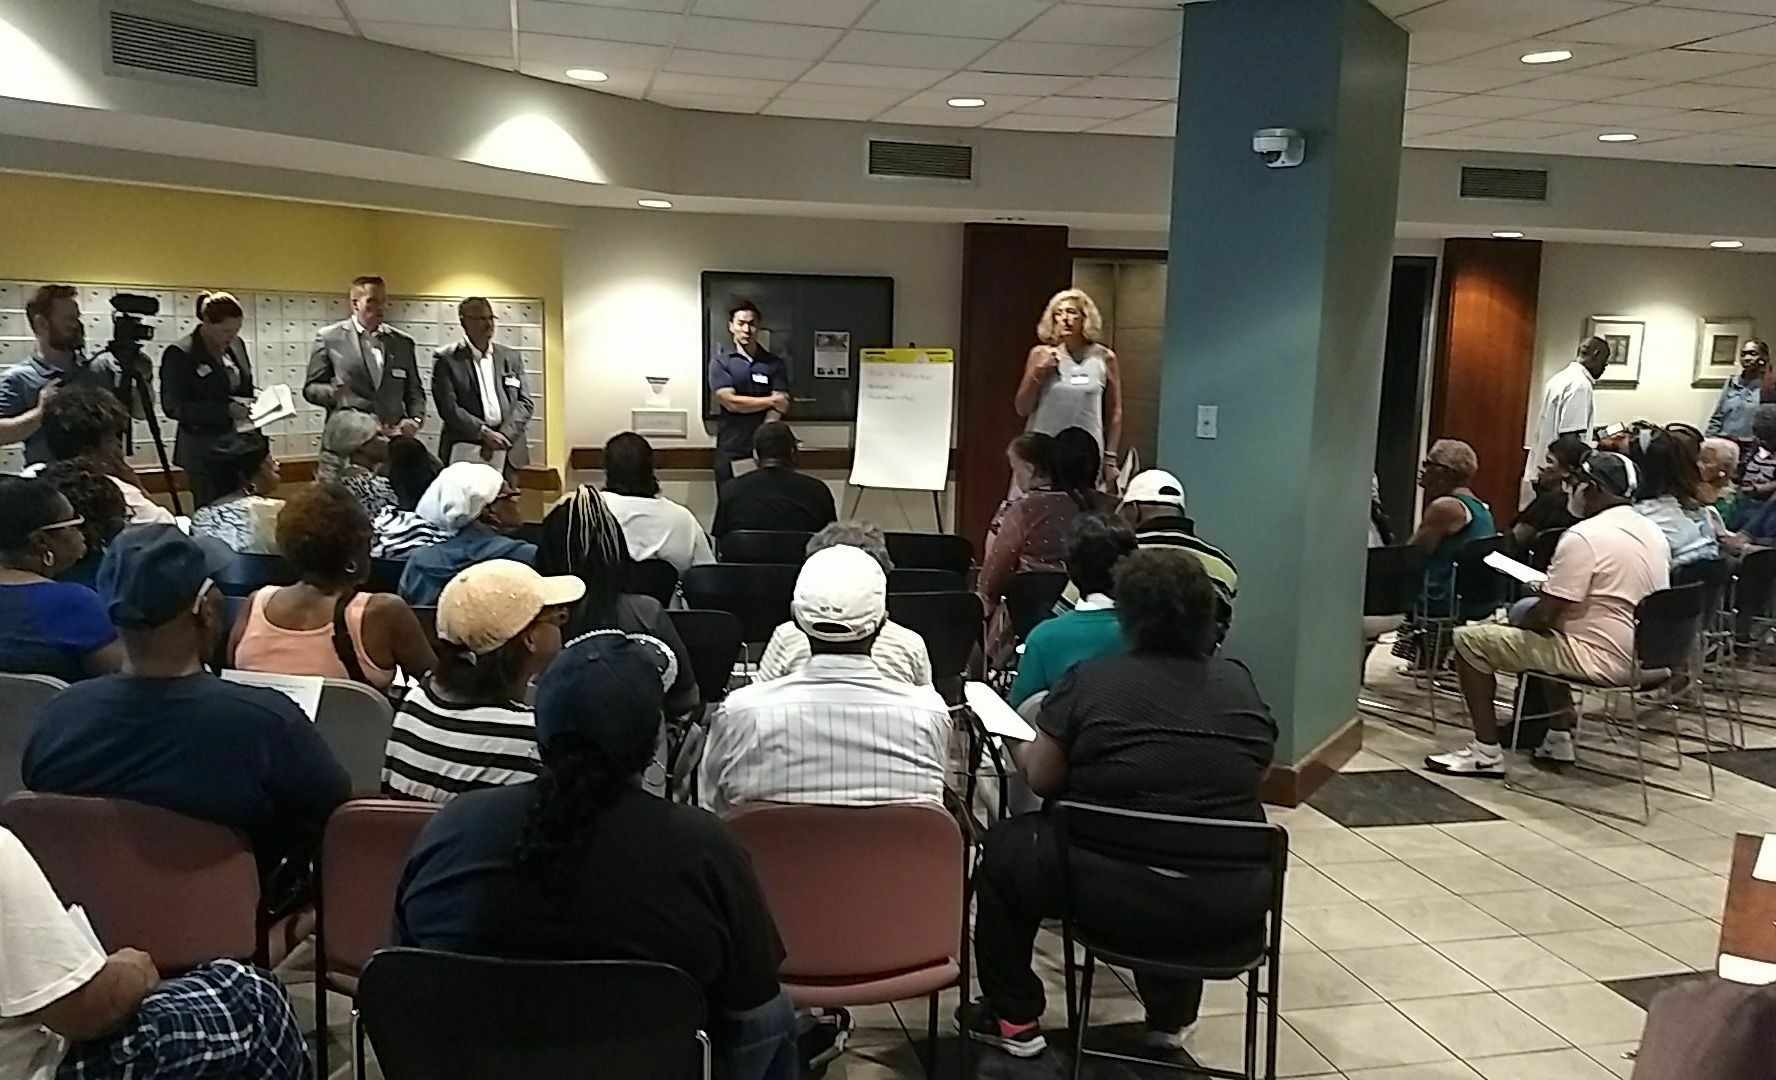 July 10, 2019 - Vicki Davis and other executives from Urban Atlantic and Edgewood Management field questions from tenants and supporters regarding slum conditions at the Bolton House building in Baltimore. Photo Credit: PSL-Baltimore.